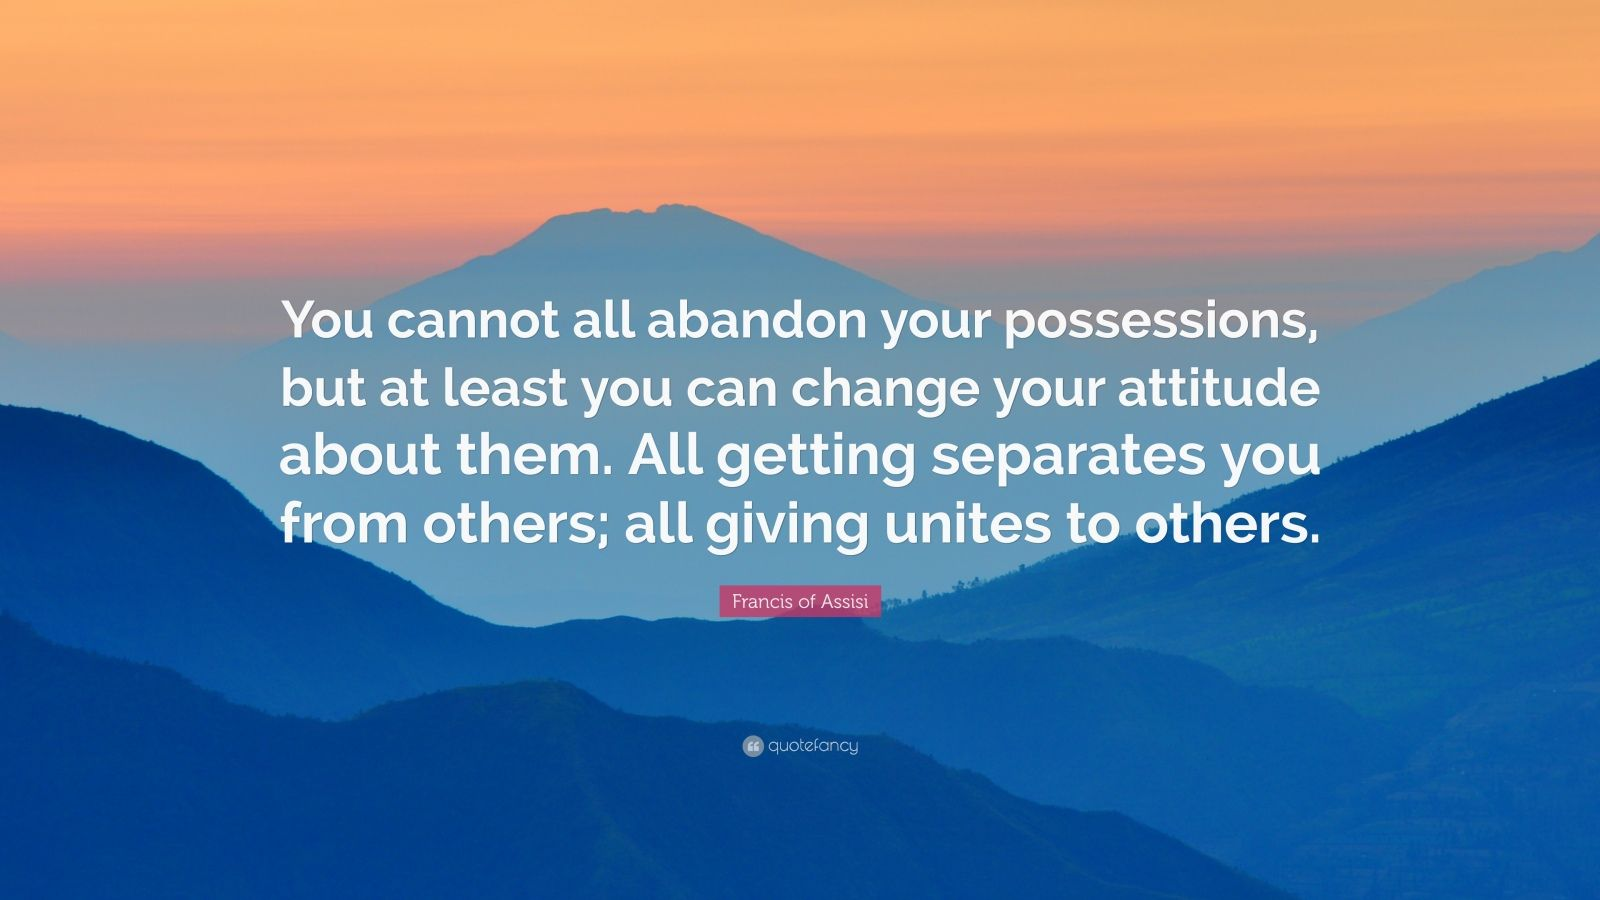 """Francis of Assisi Quote: """"You cannot all abandon your possessions, but at least you can change your attitude about them. All getting separates you from others; all giving unites to others."""""""